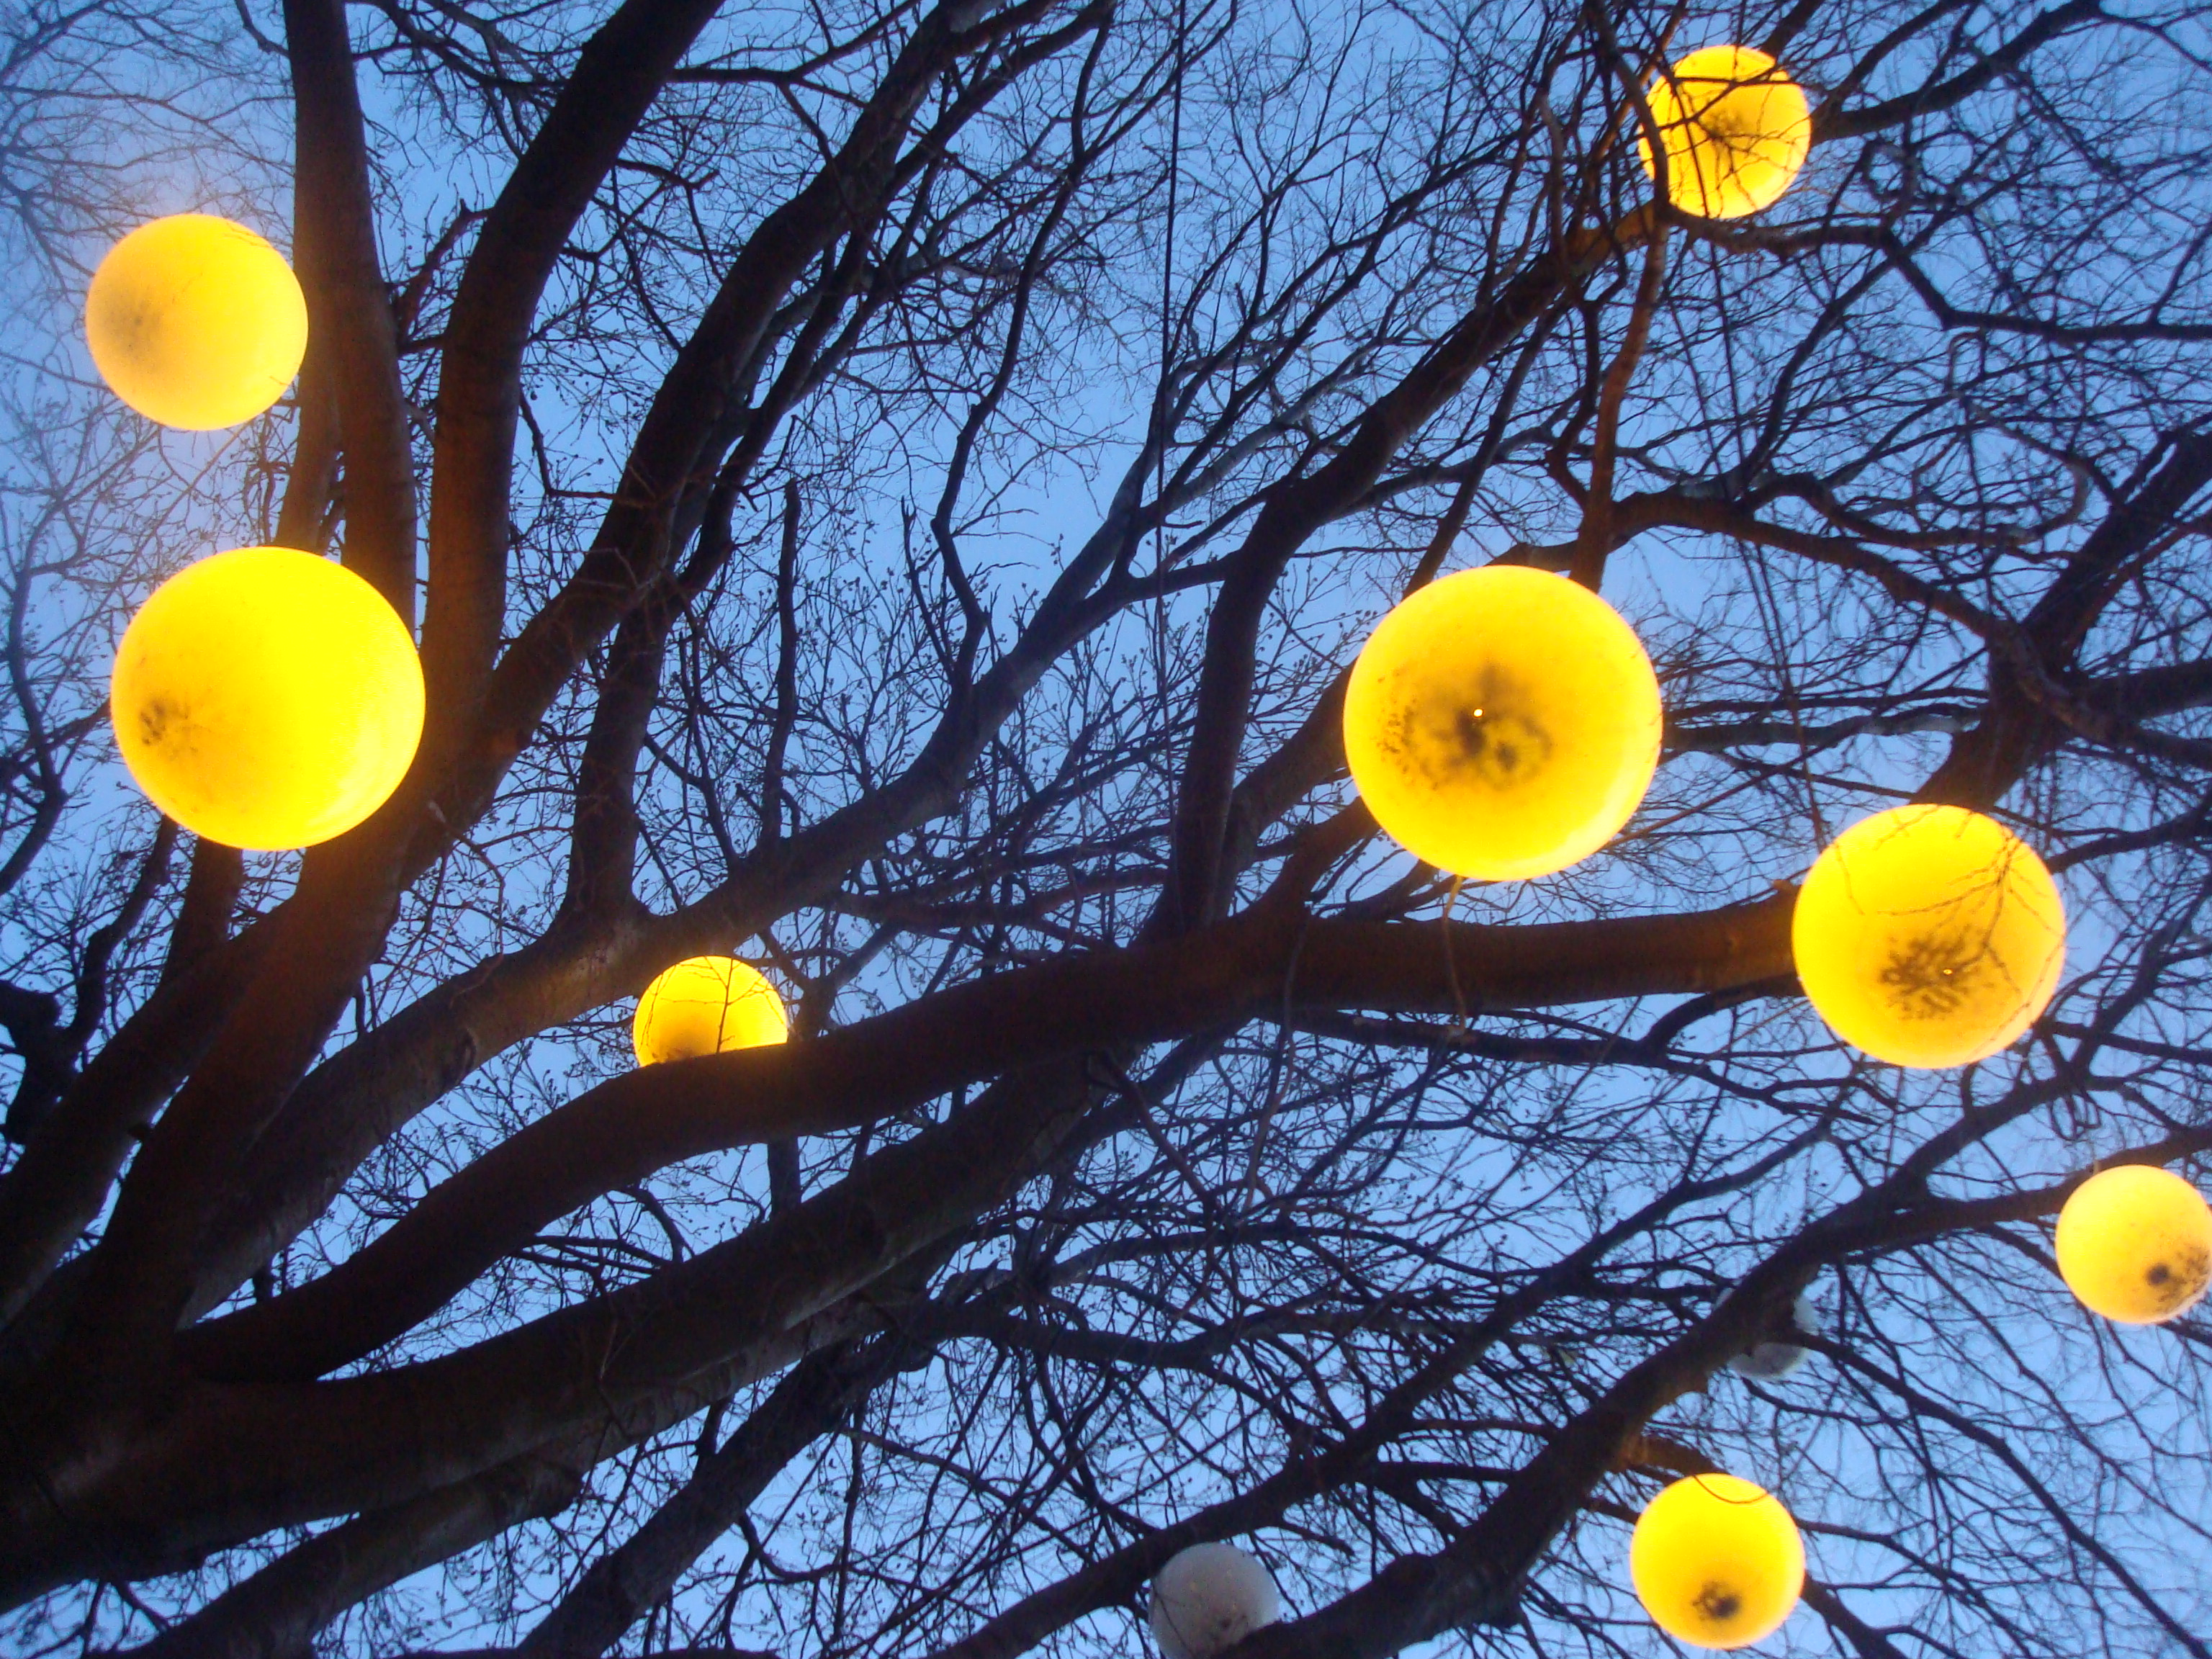 Lamps on a tree photo